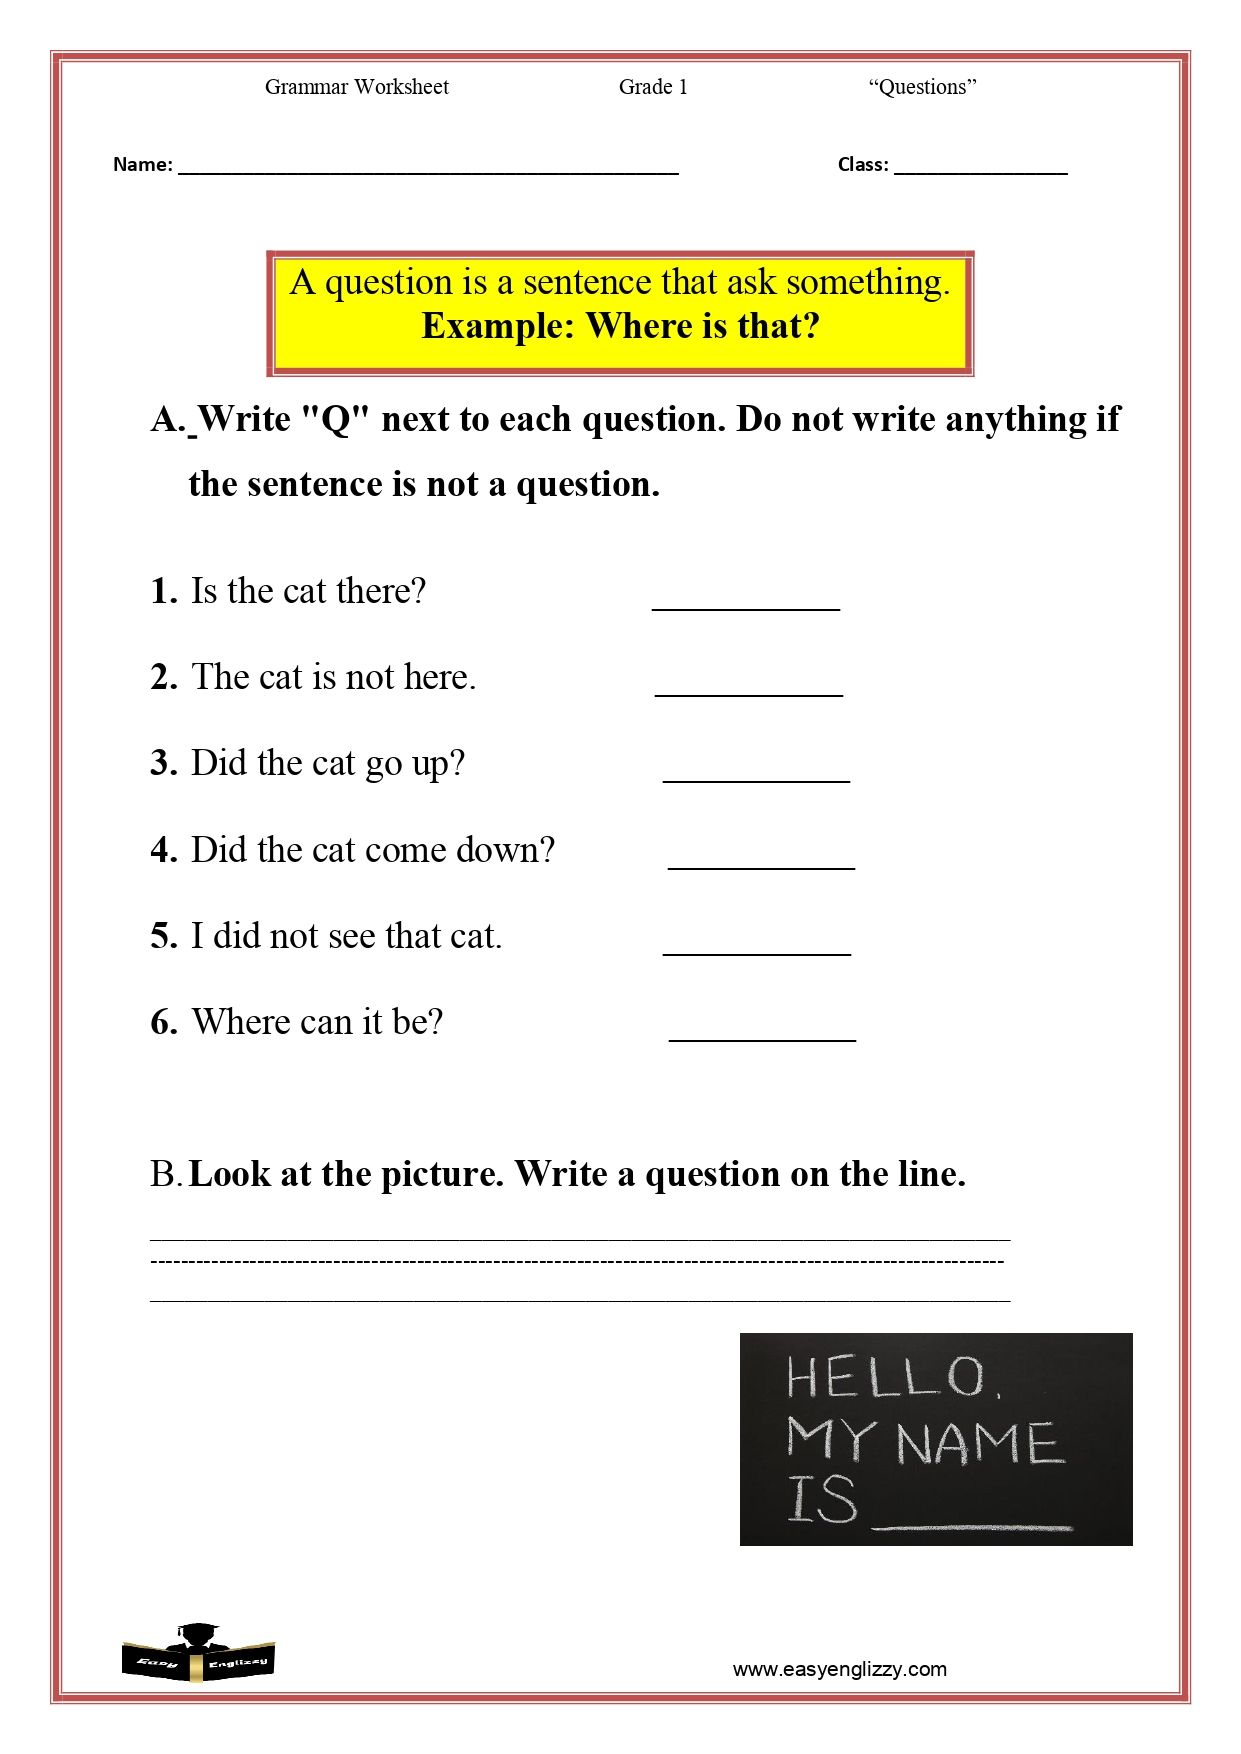 Questions Worksheet This Or That Questions Printable English Worksheets Grammar Worksheets [ 1754 x 1241 Pixel ]